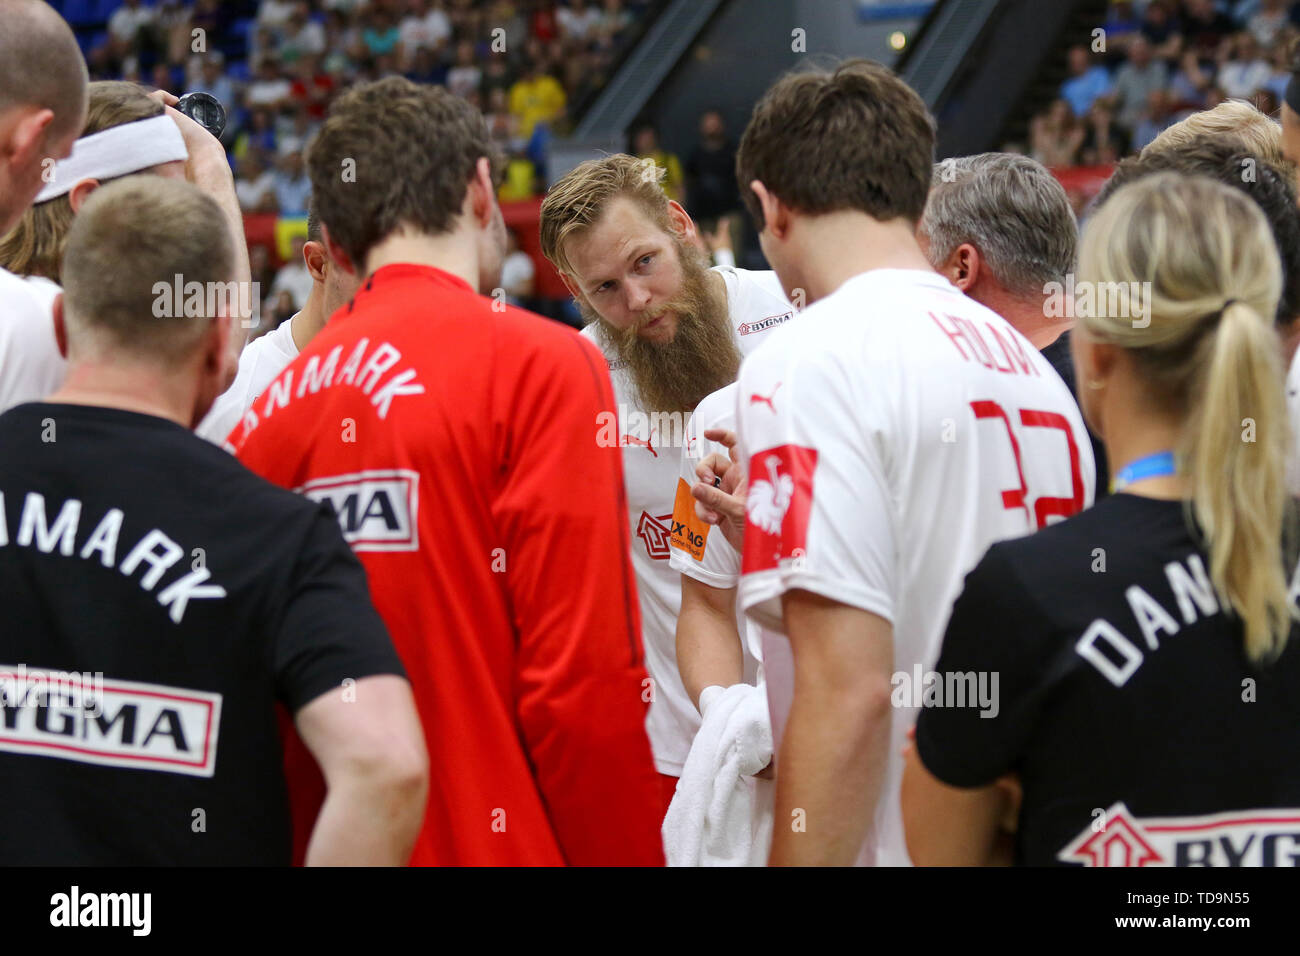 Kyiv Ukraine June 12 2019 Players Of Denmark National